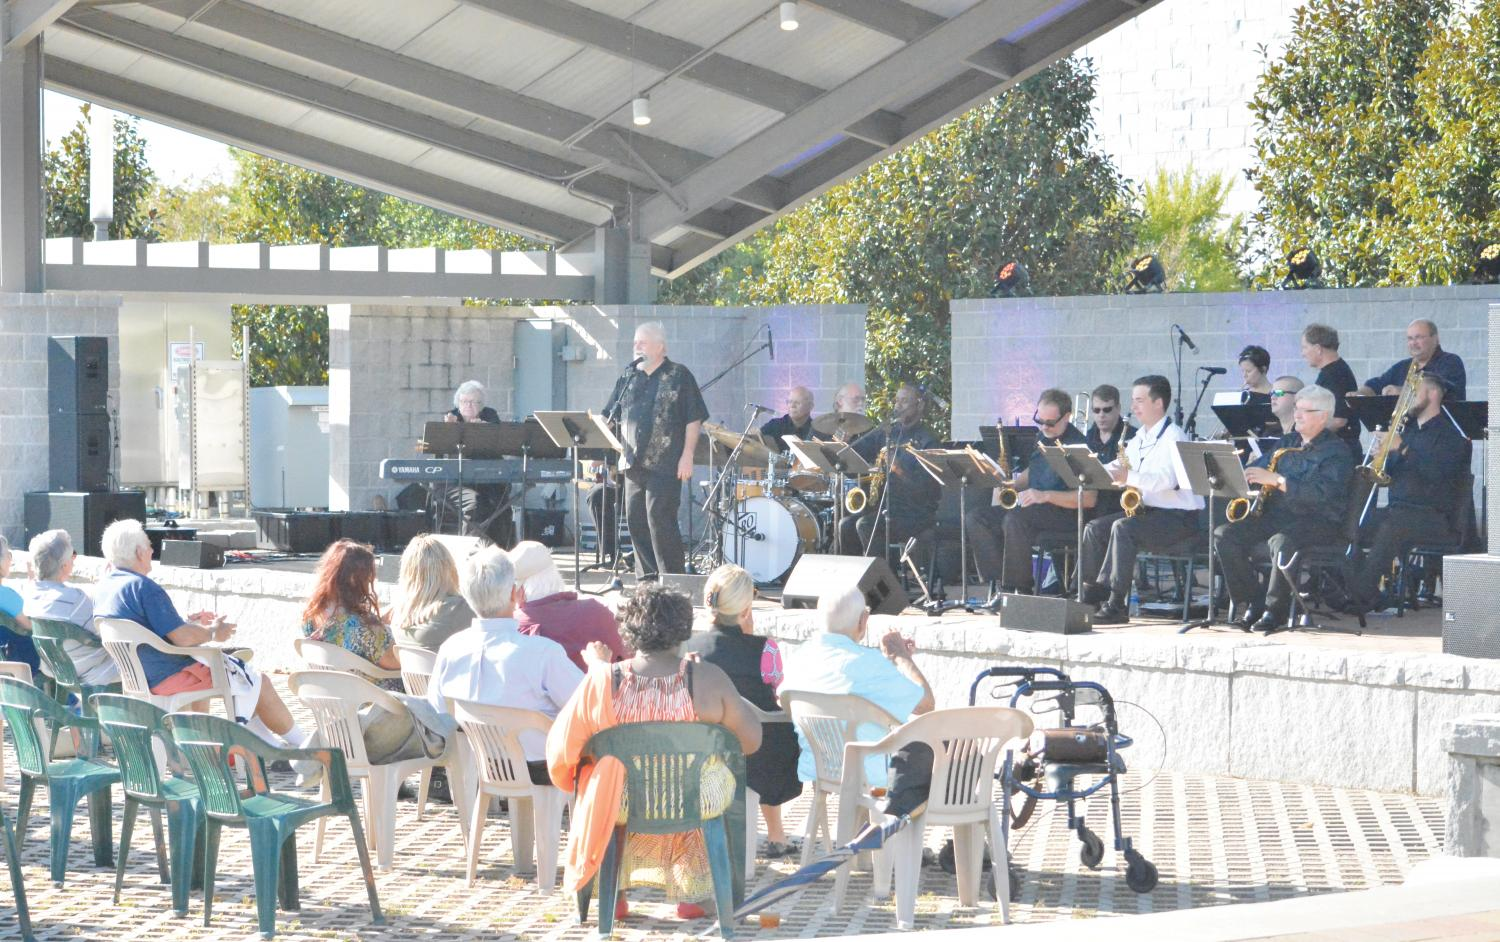 The Florence Area Big Band plays jazz music from the 1940s. FMU alum Rod Pope performs with the Florence Big Area Band.